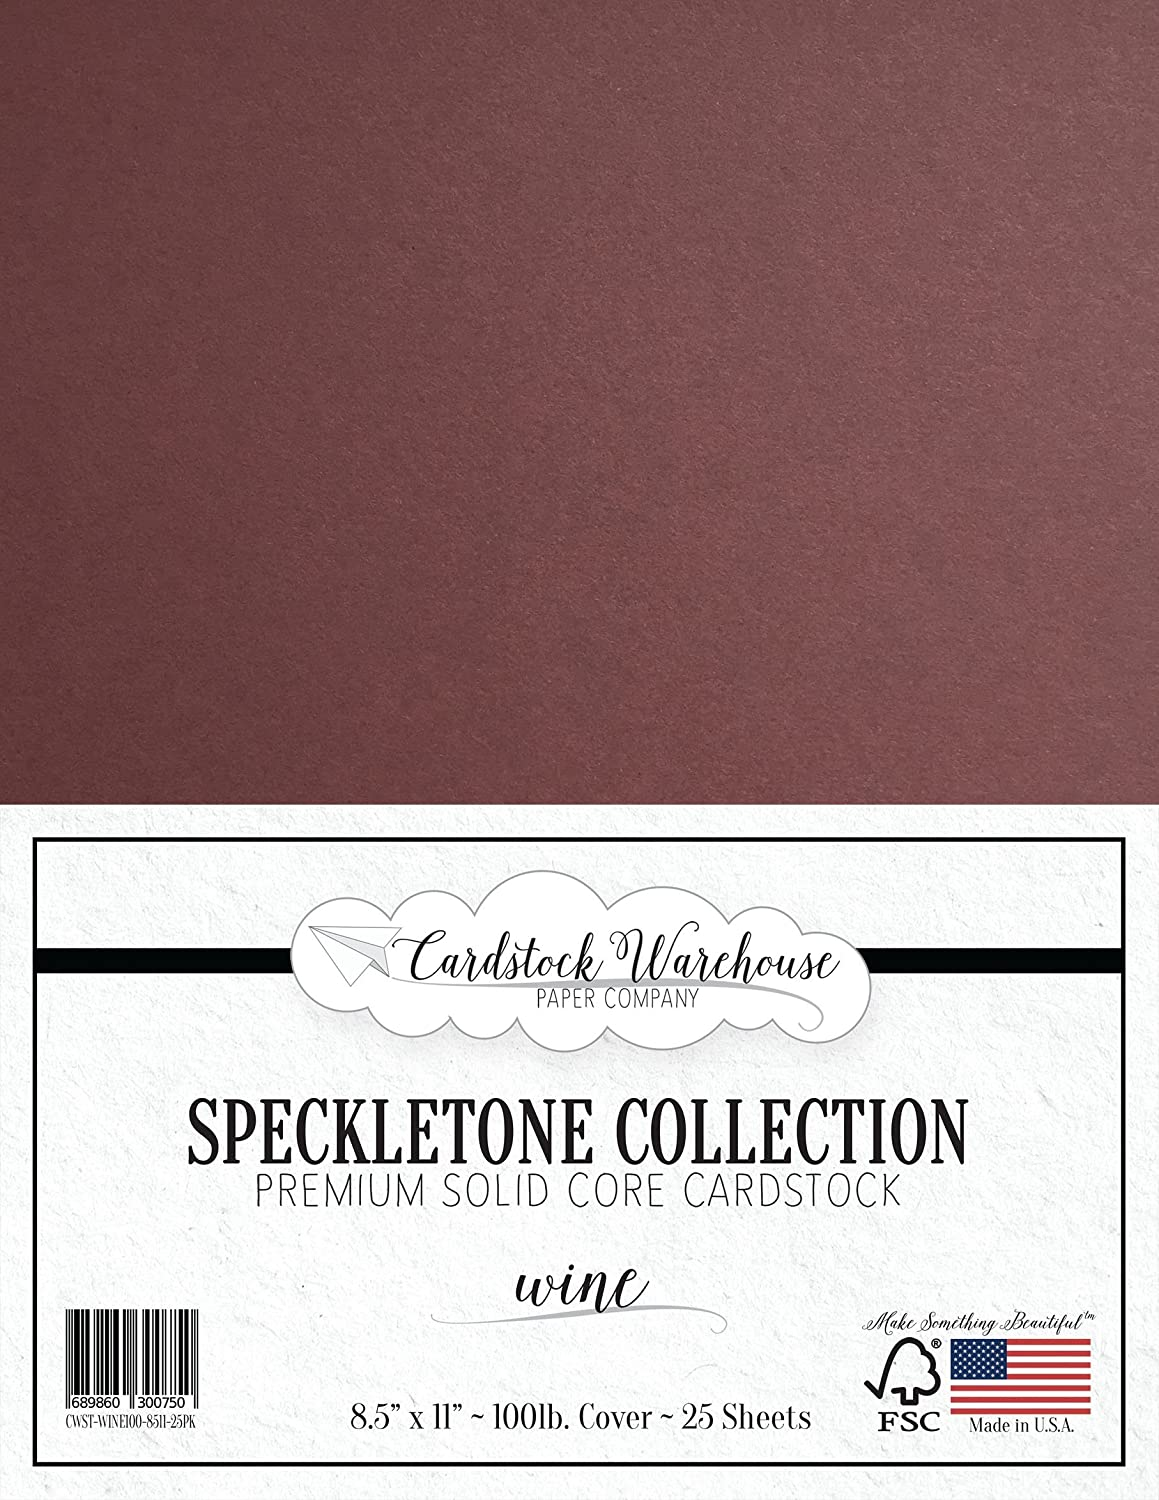 Wine SPECKLETONE Recycled Cardstock Paper - 8.5 x 11 inch - Premium 100 LB. Cover - 25 Sheets